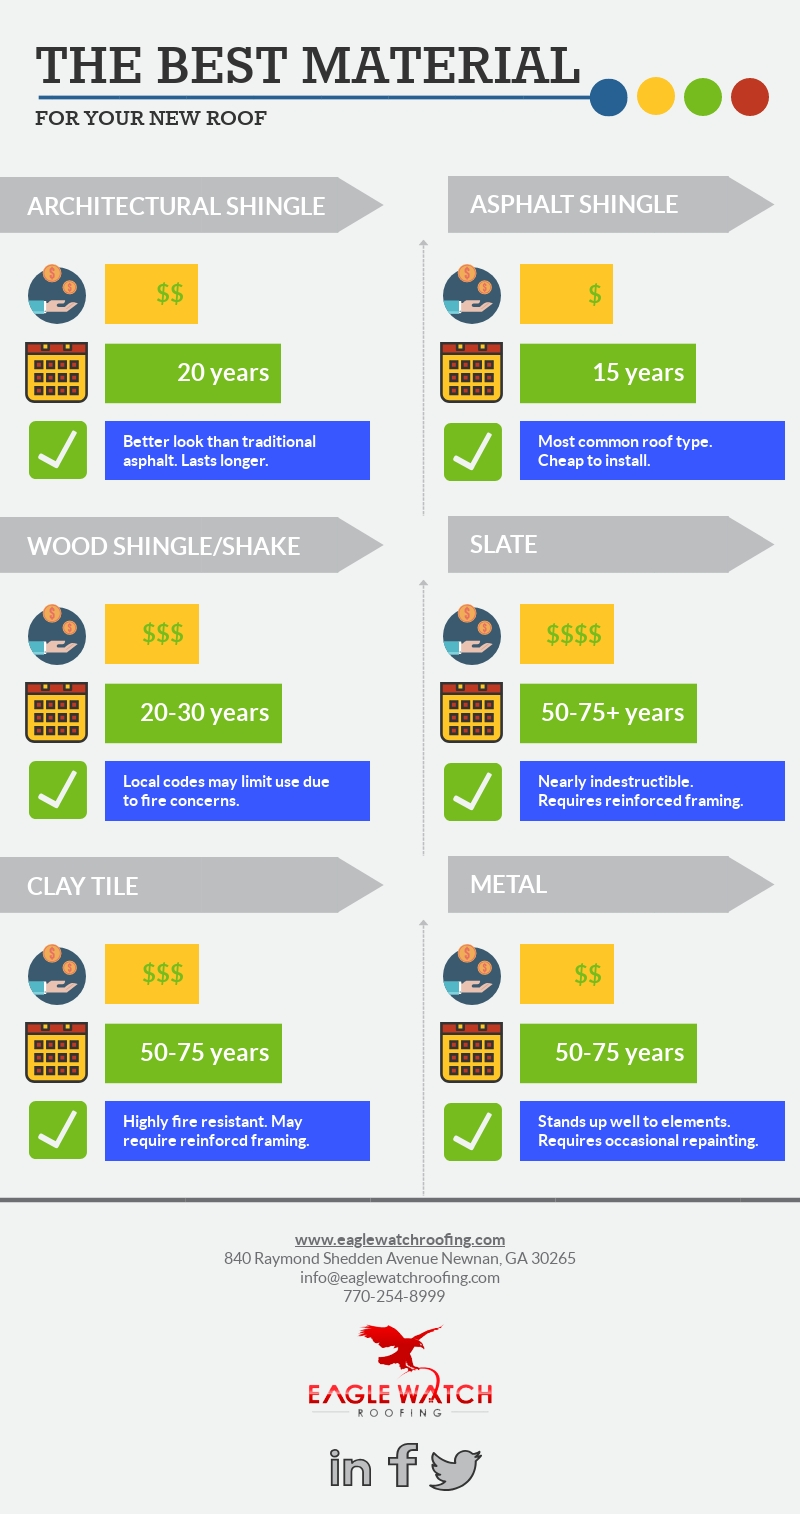 Choosing the Best Material for a New Roof [infographic]